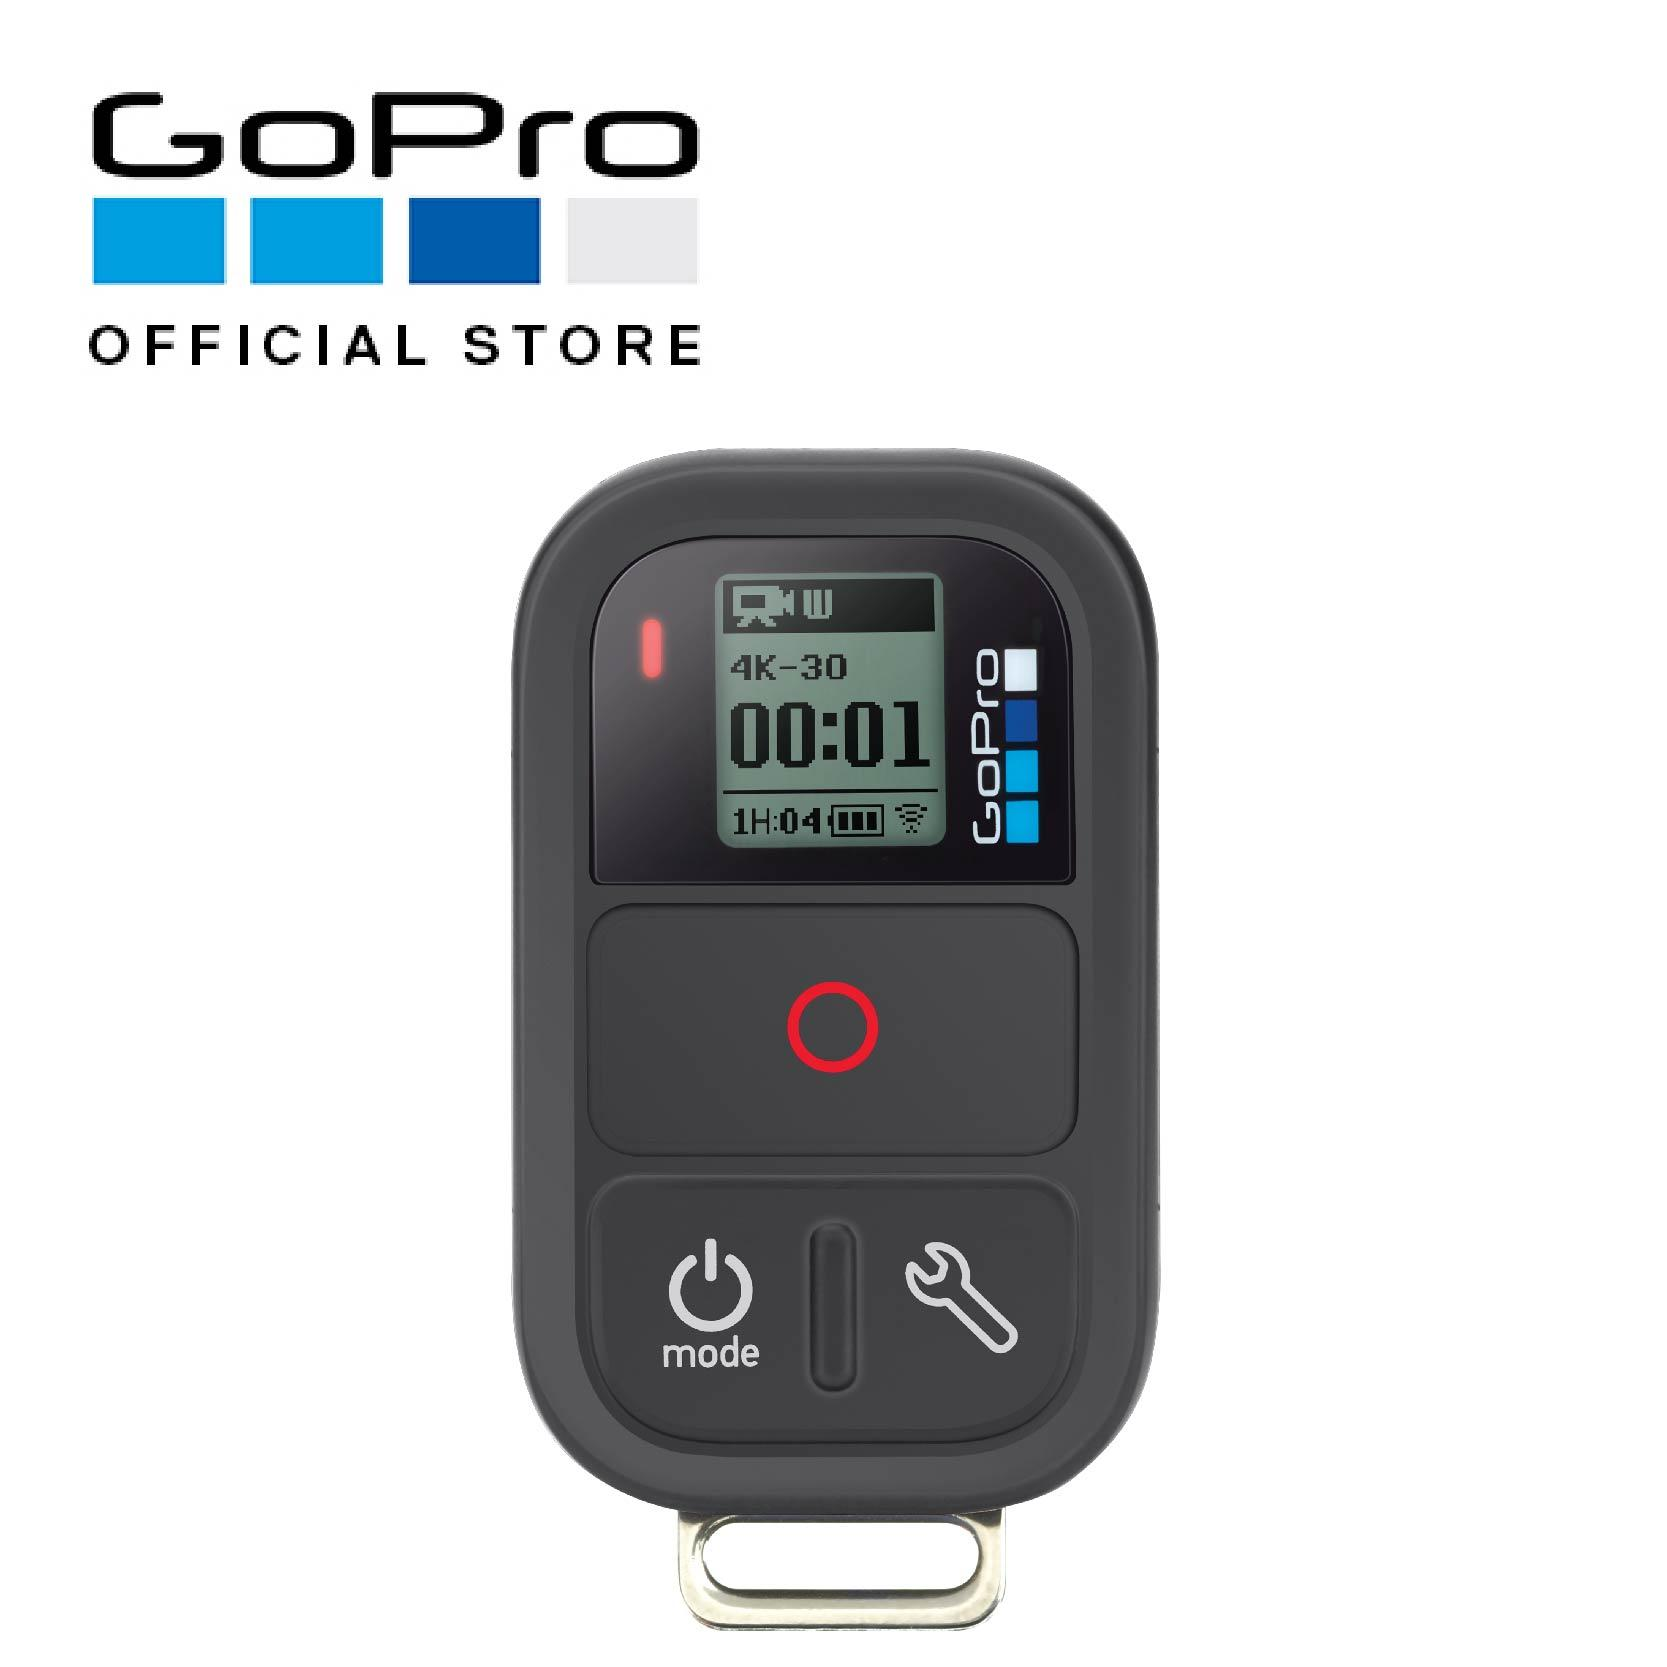 Gopro Smart Remote Lowest Price